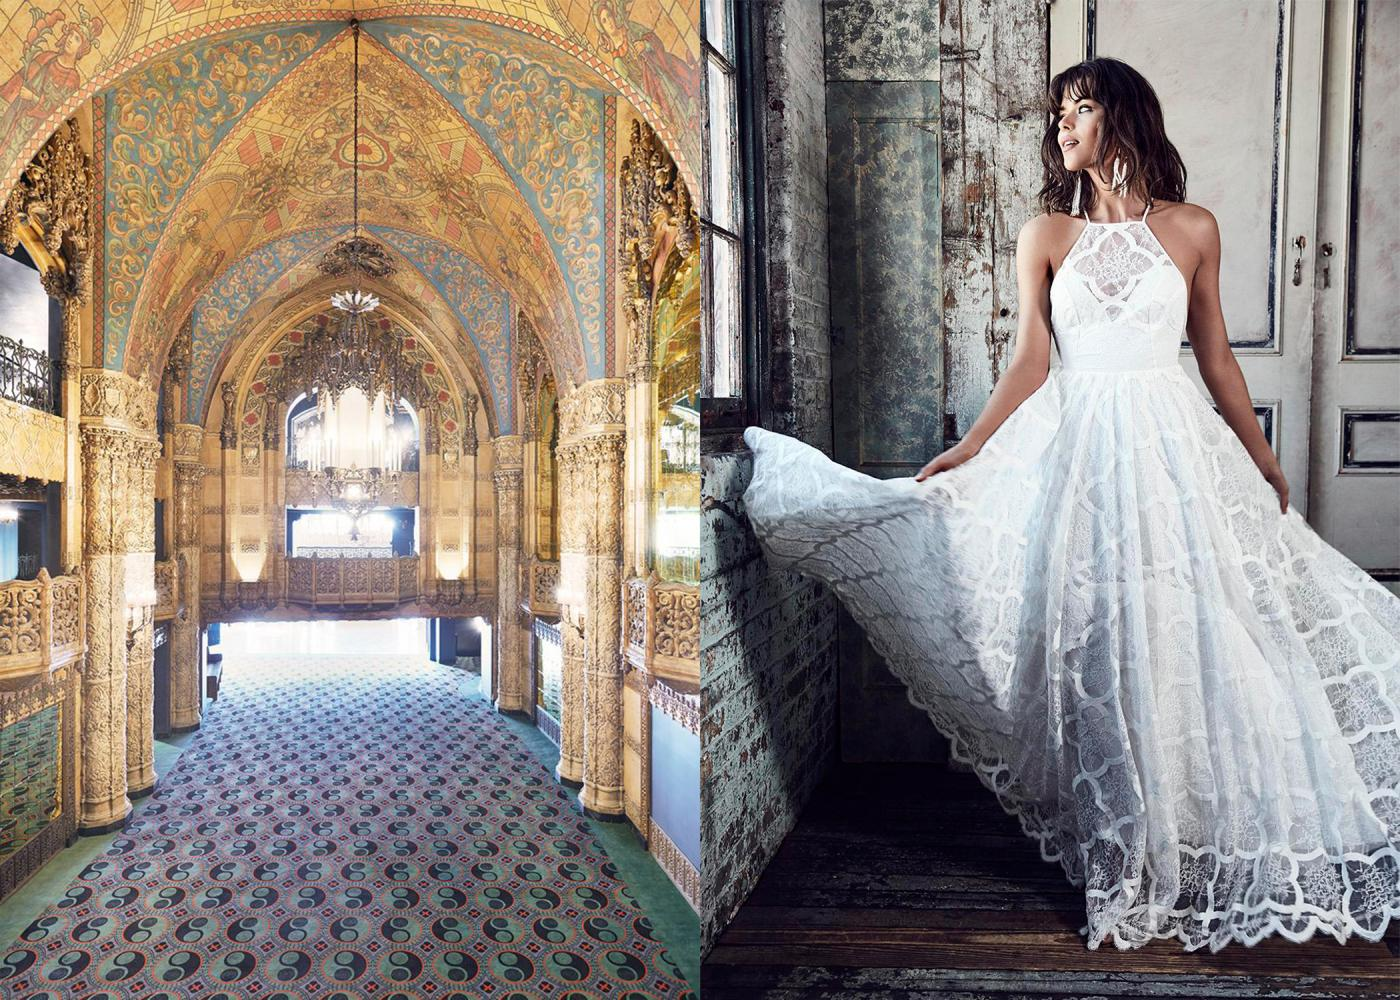 The Most Pinned Wedding Dress Ever On Pinterest Where To Wear It,Group Usa Wedding Dresses